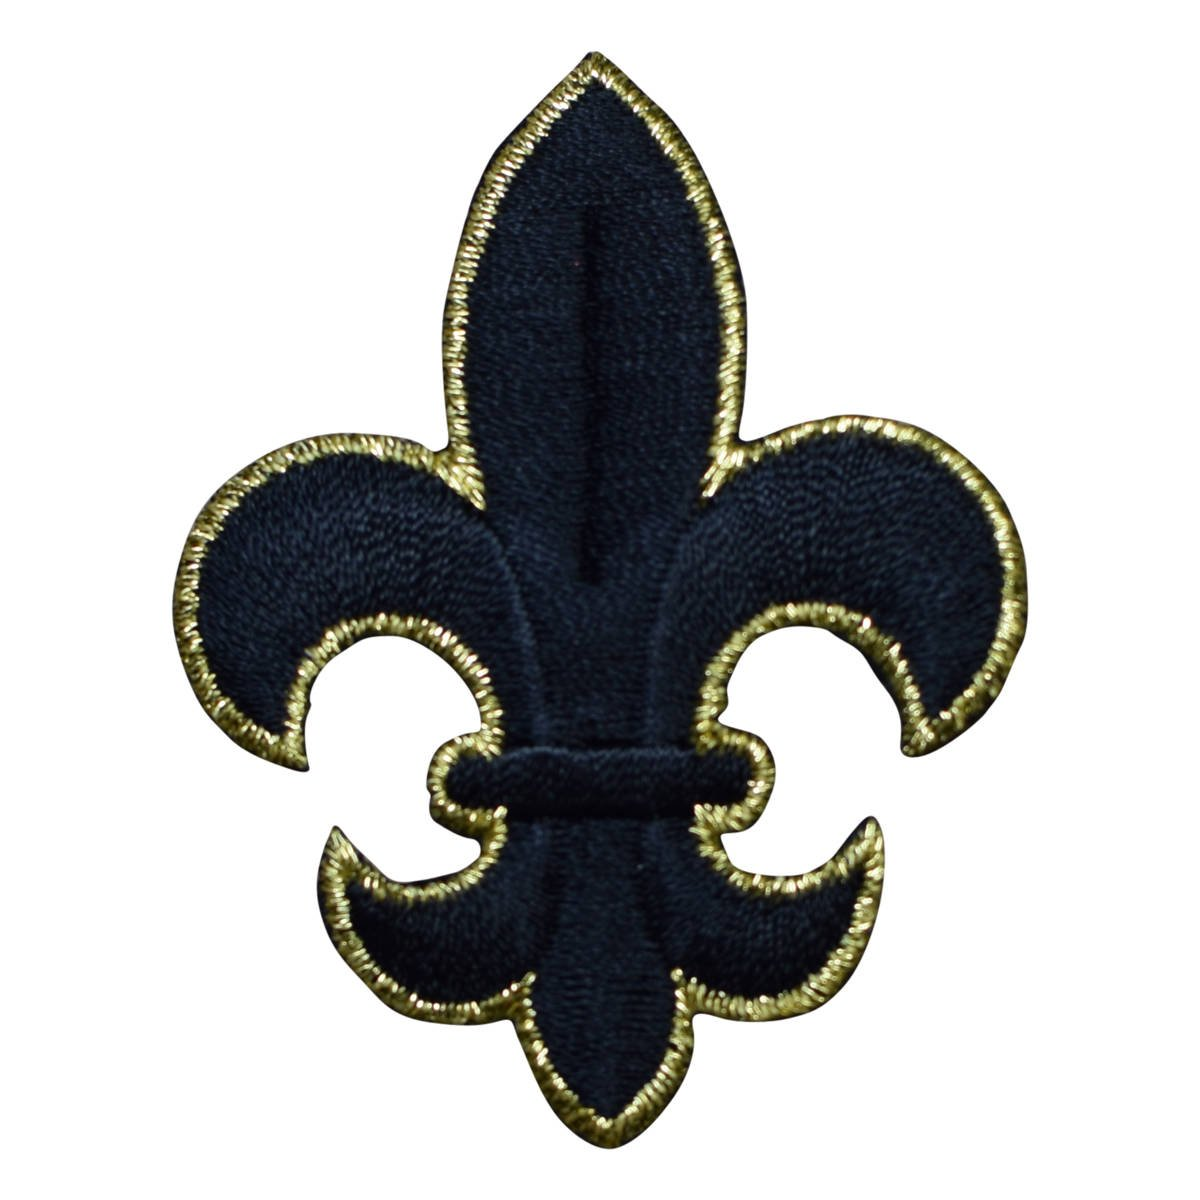 Iron on Large Black and Gold Fleur De Lis Cross Applique Patch